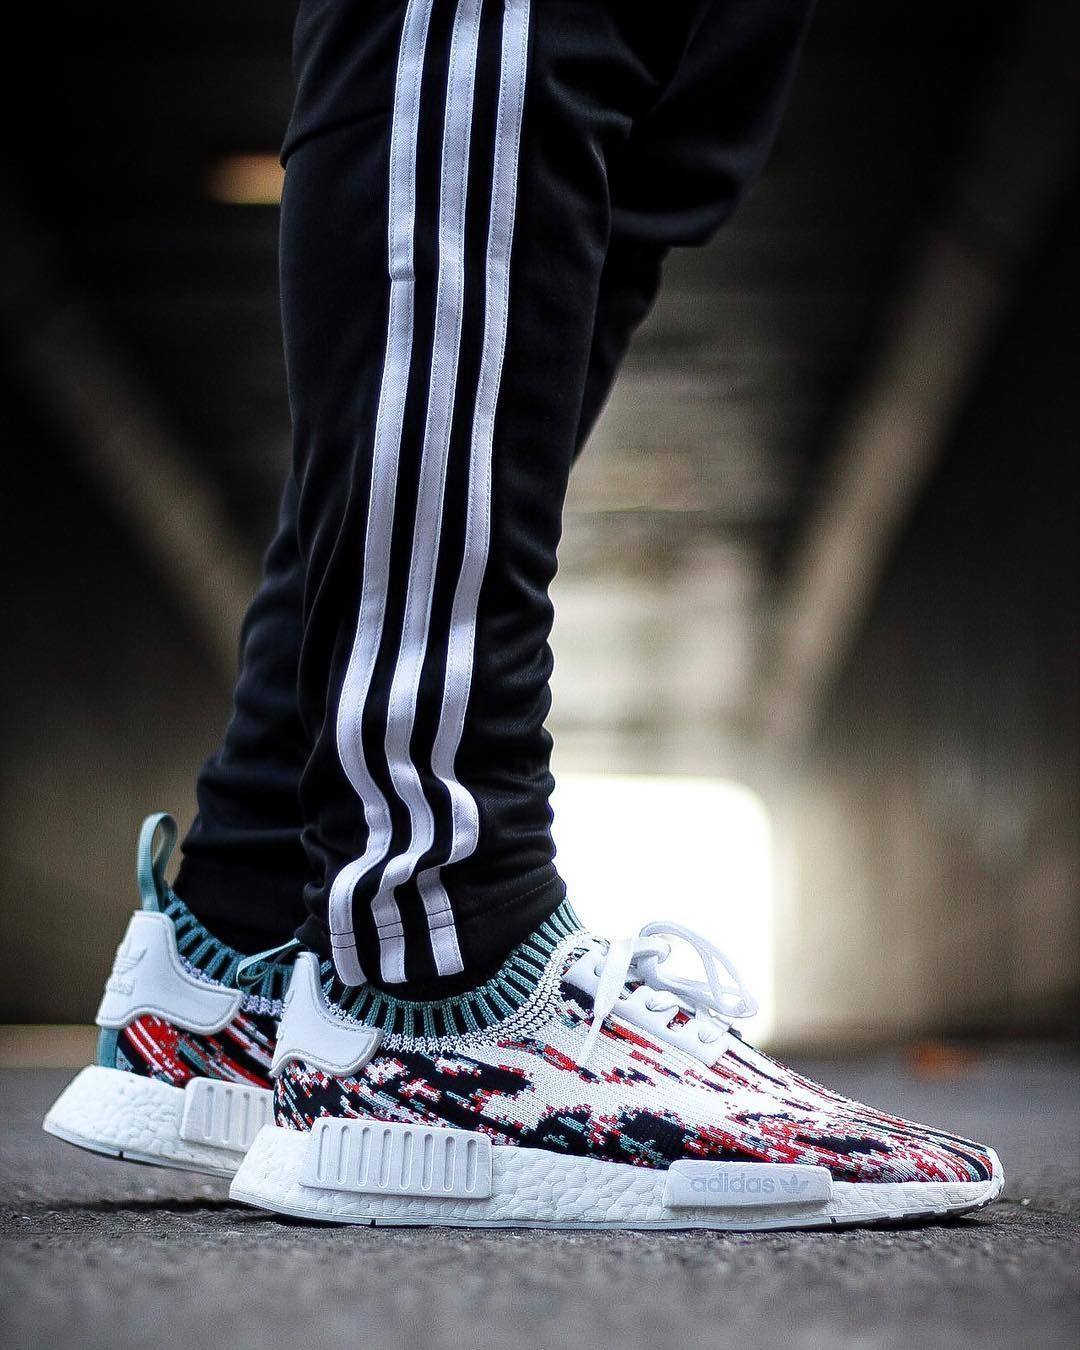 official photos 12e25 0064d SNS x adidas NMD R1 Primeknit Red Datamosh | Street Styles ...